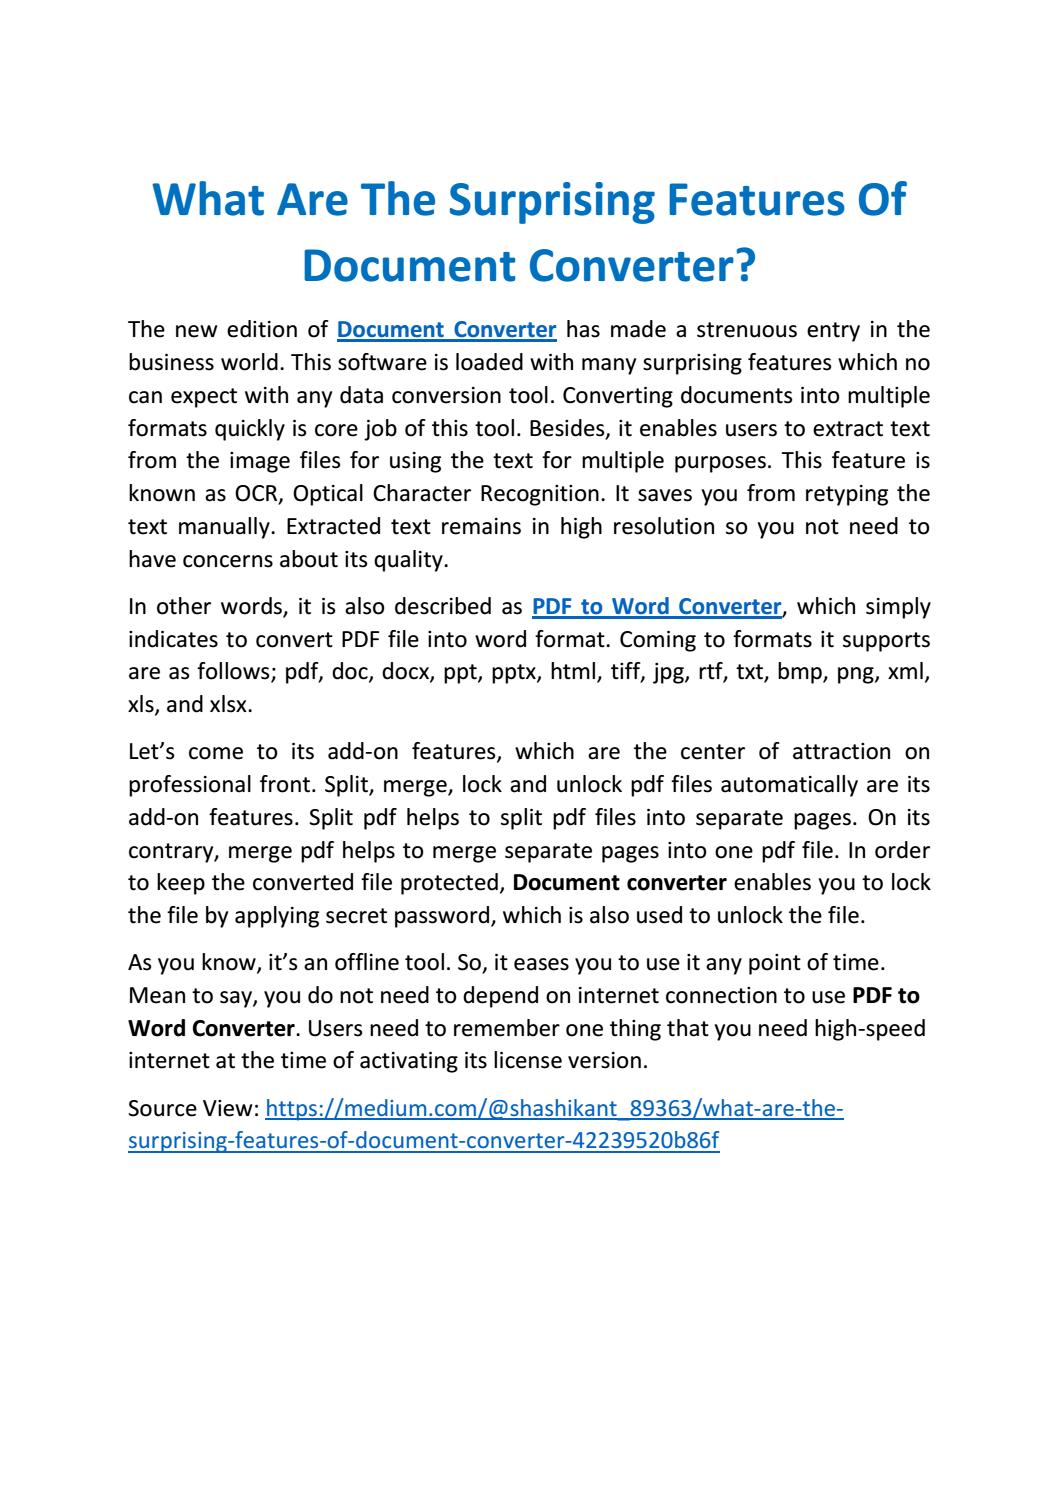 What are the surprising features of document converter by